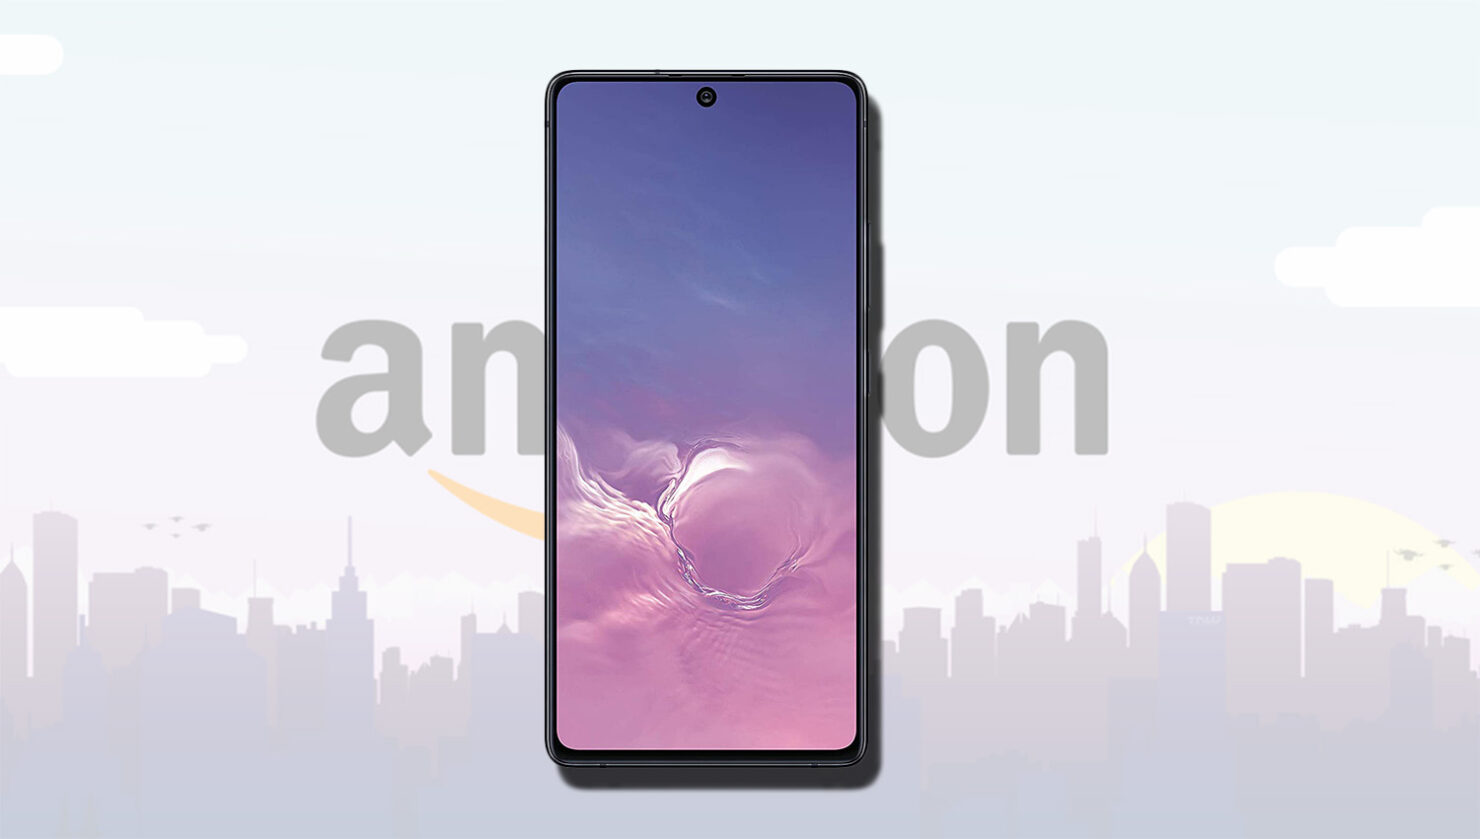 Galaxy S10 Lite Unlocked Comes With a Snapdragon 855, 8GB RAM, Massive 4500mah Battery and Is Available for Just $499.99